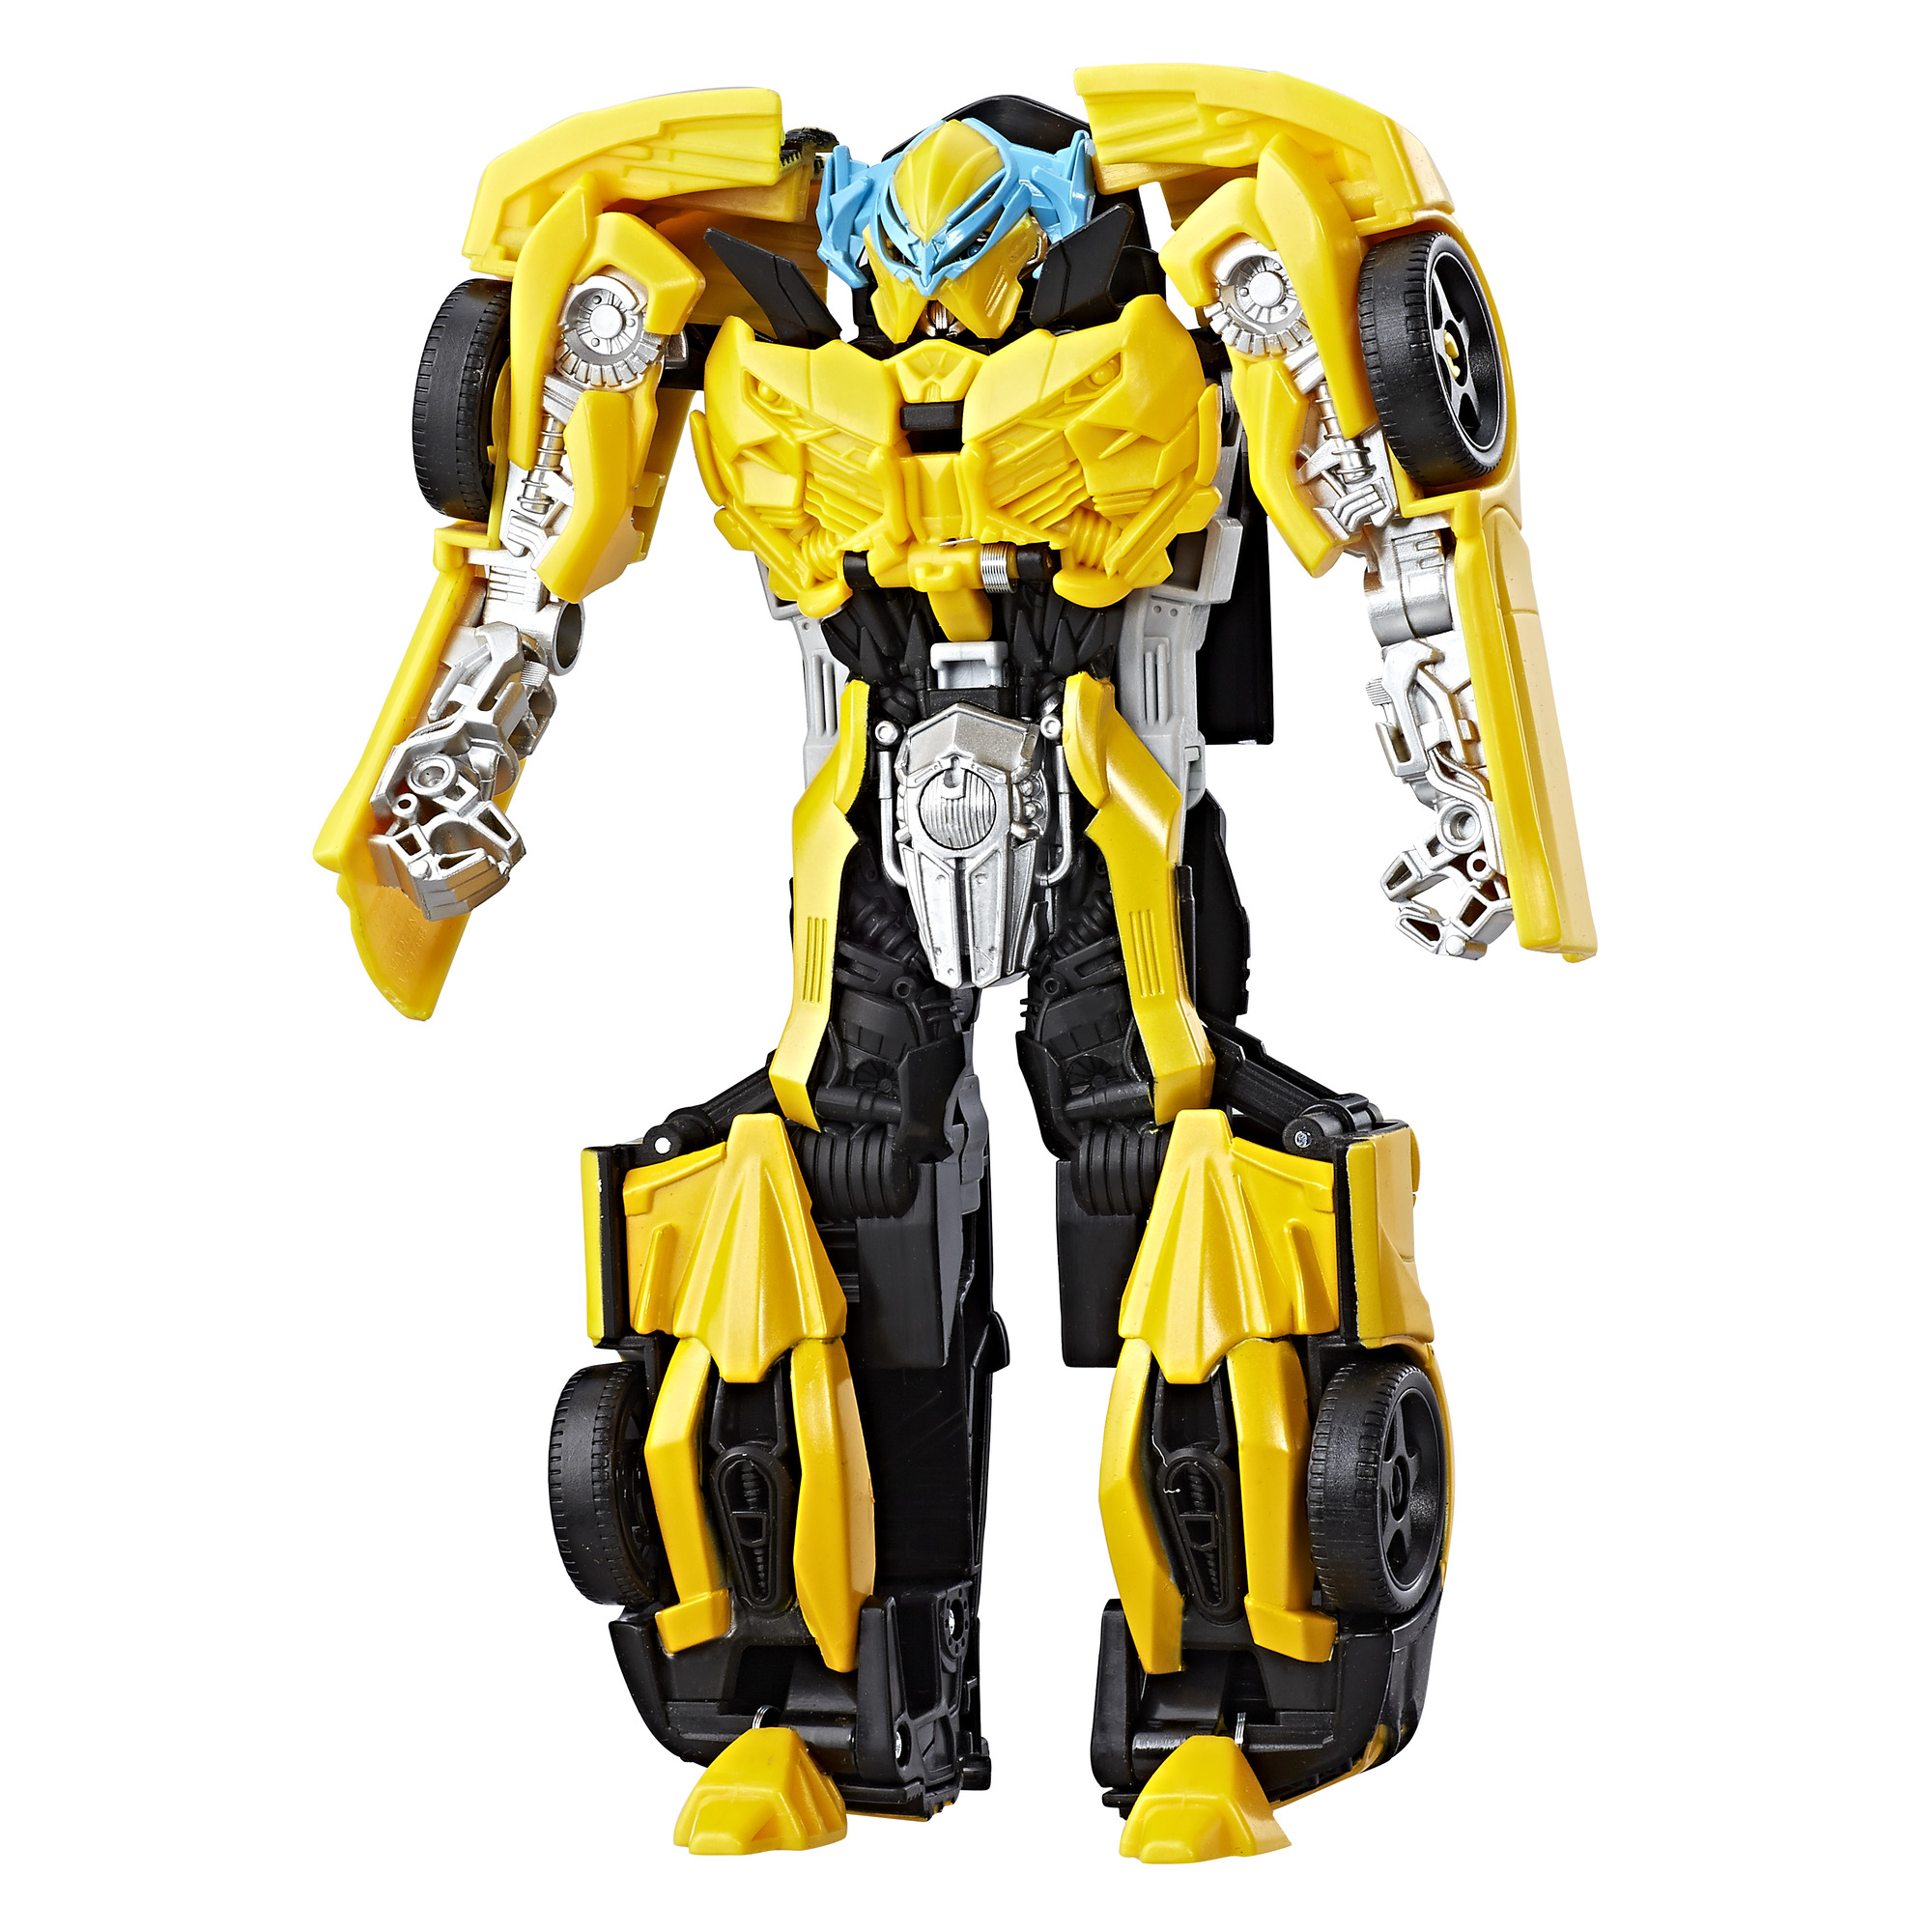 Transformers: The Last Knight -- Knight Armor Turbo Changer Bumblebee by Hasbro Inc